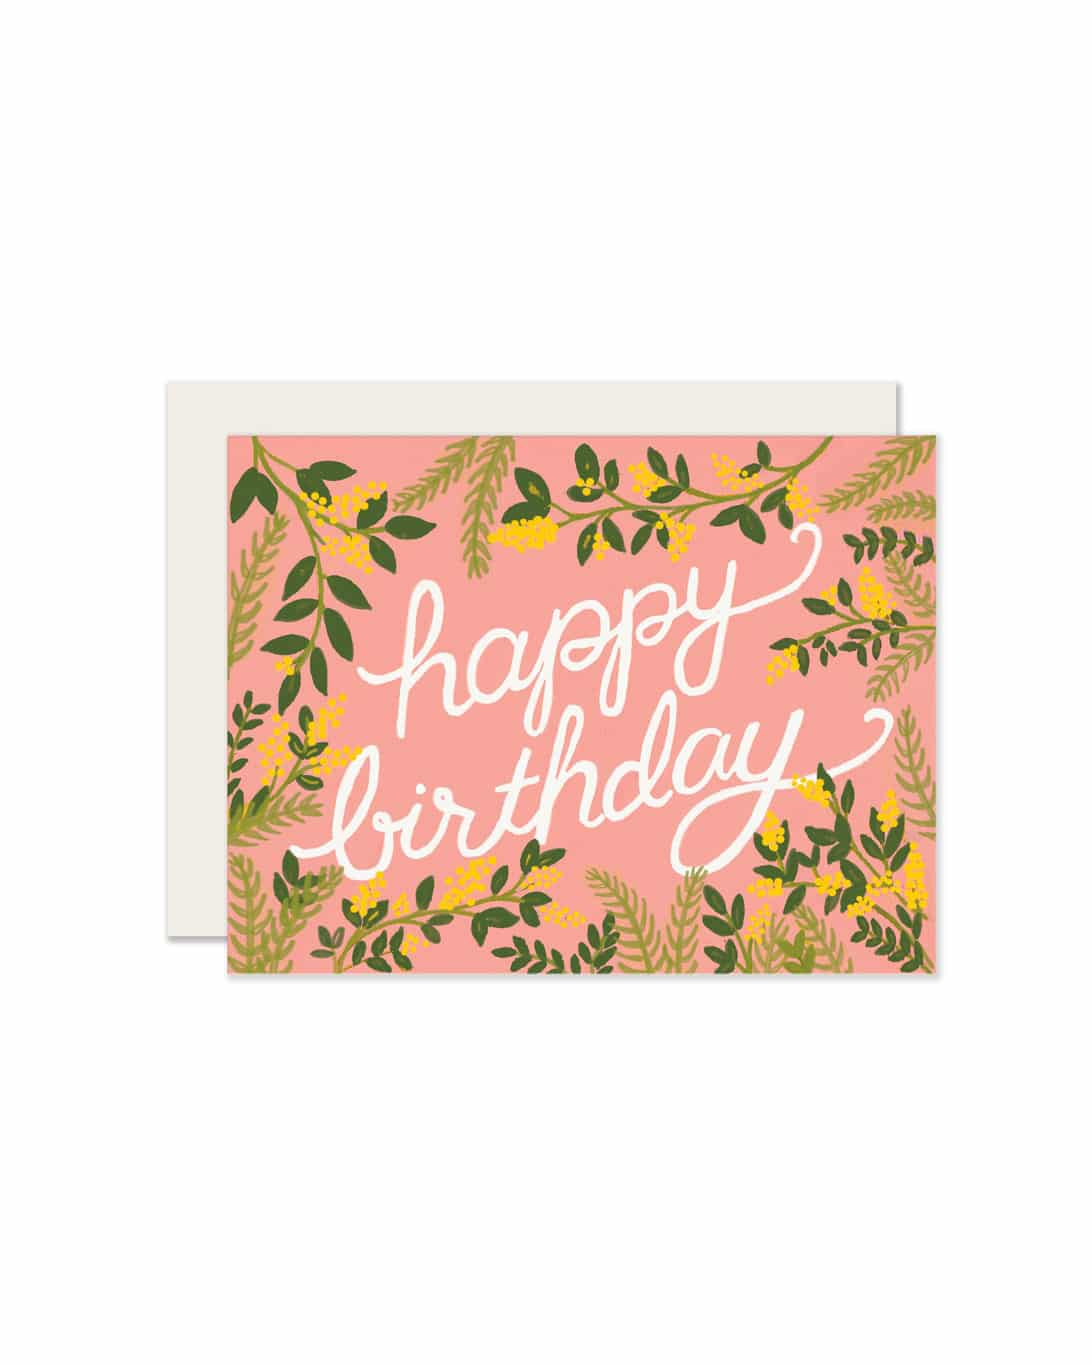 A pink, paper birthday card that says happy birthday surrounded by plants